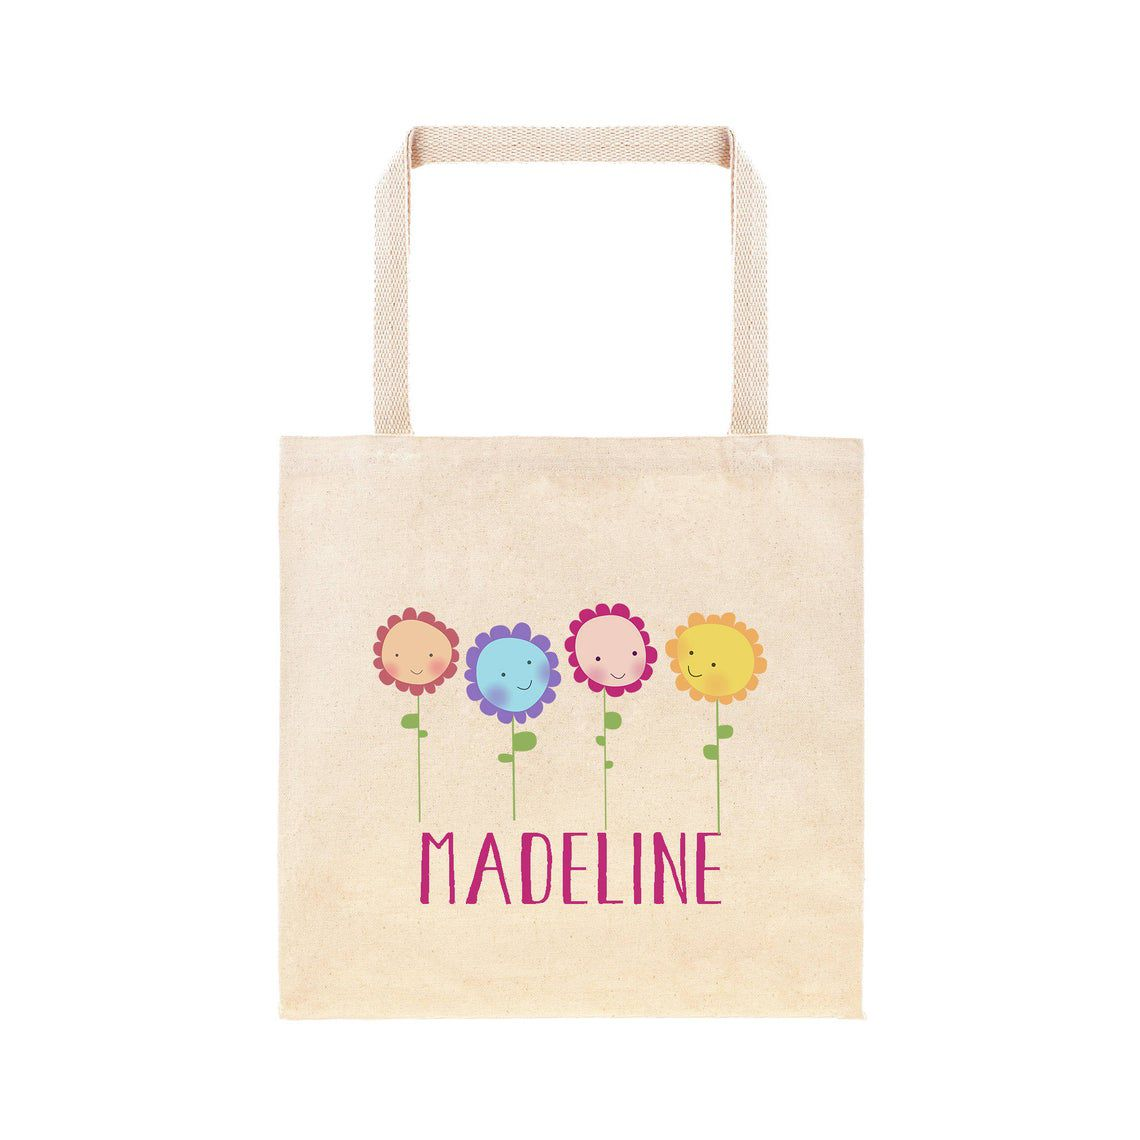 Etsy Happy Flowers Personalized Tote Bag